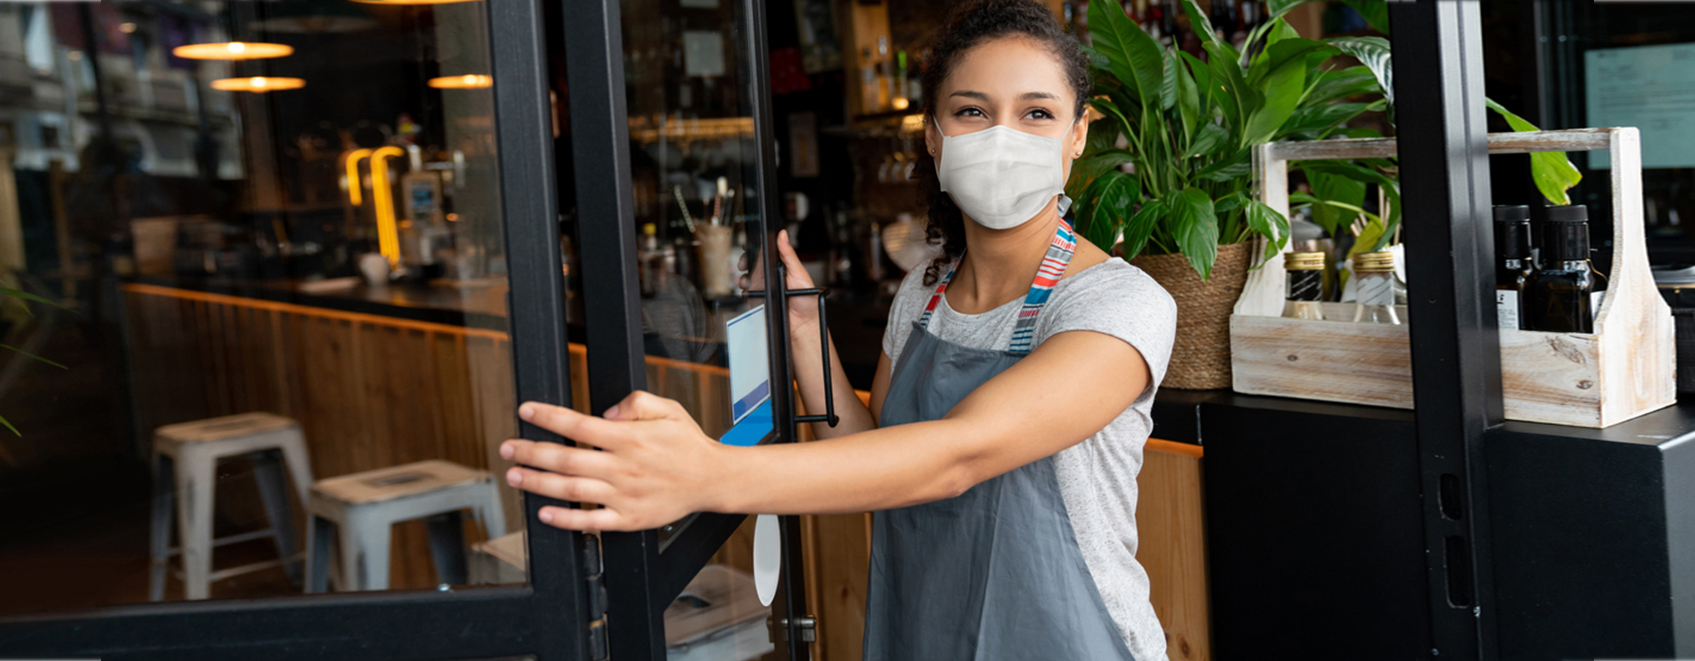 business owner in mask, opening front door of cafe